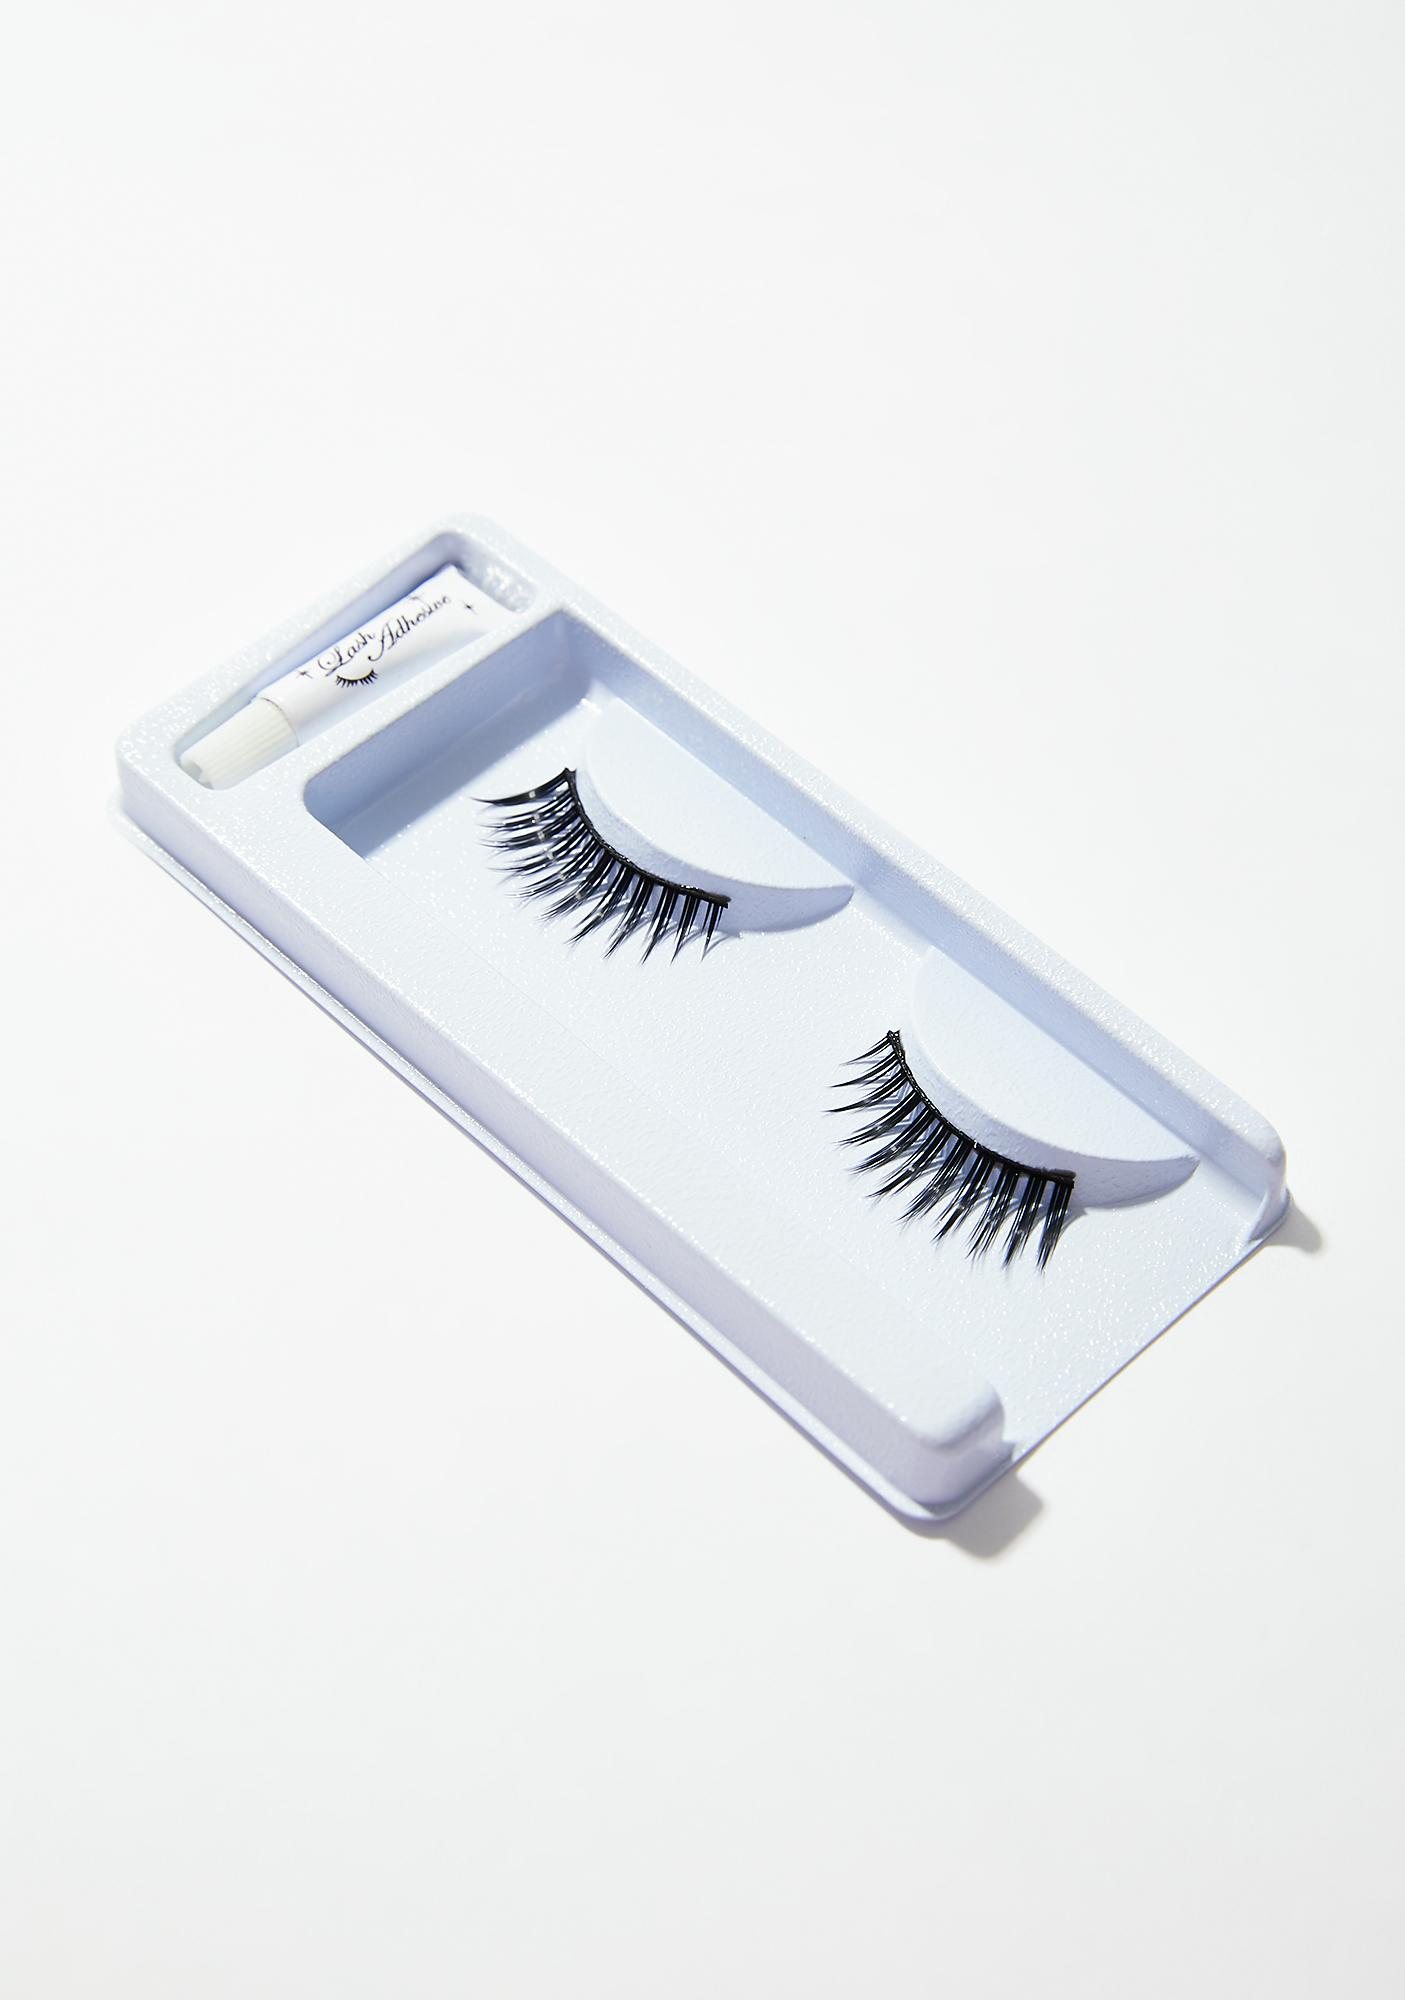 NYX Sugarlicious Fabulous Lashes & Glue